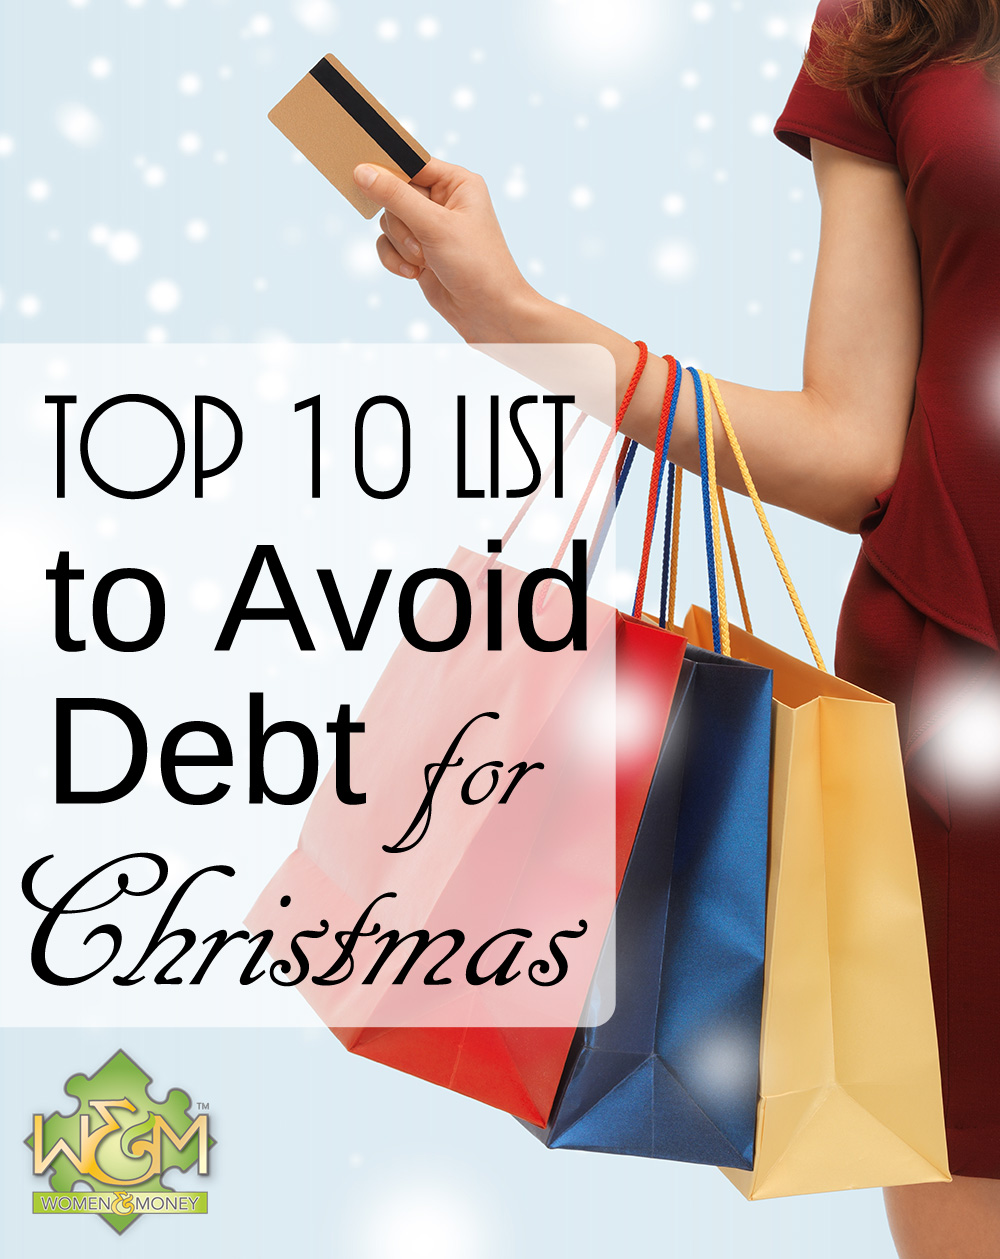 The top ten list to avoid debt for Christmas